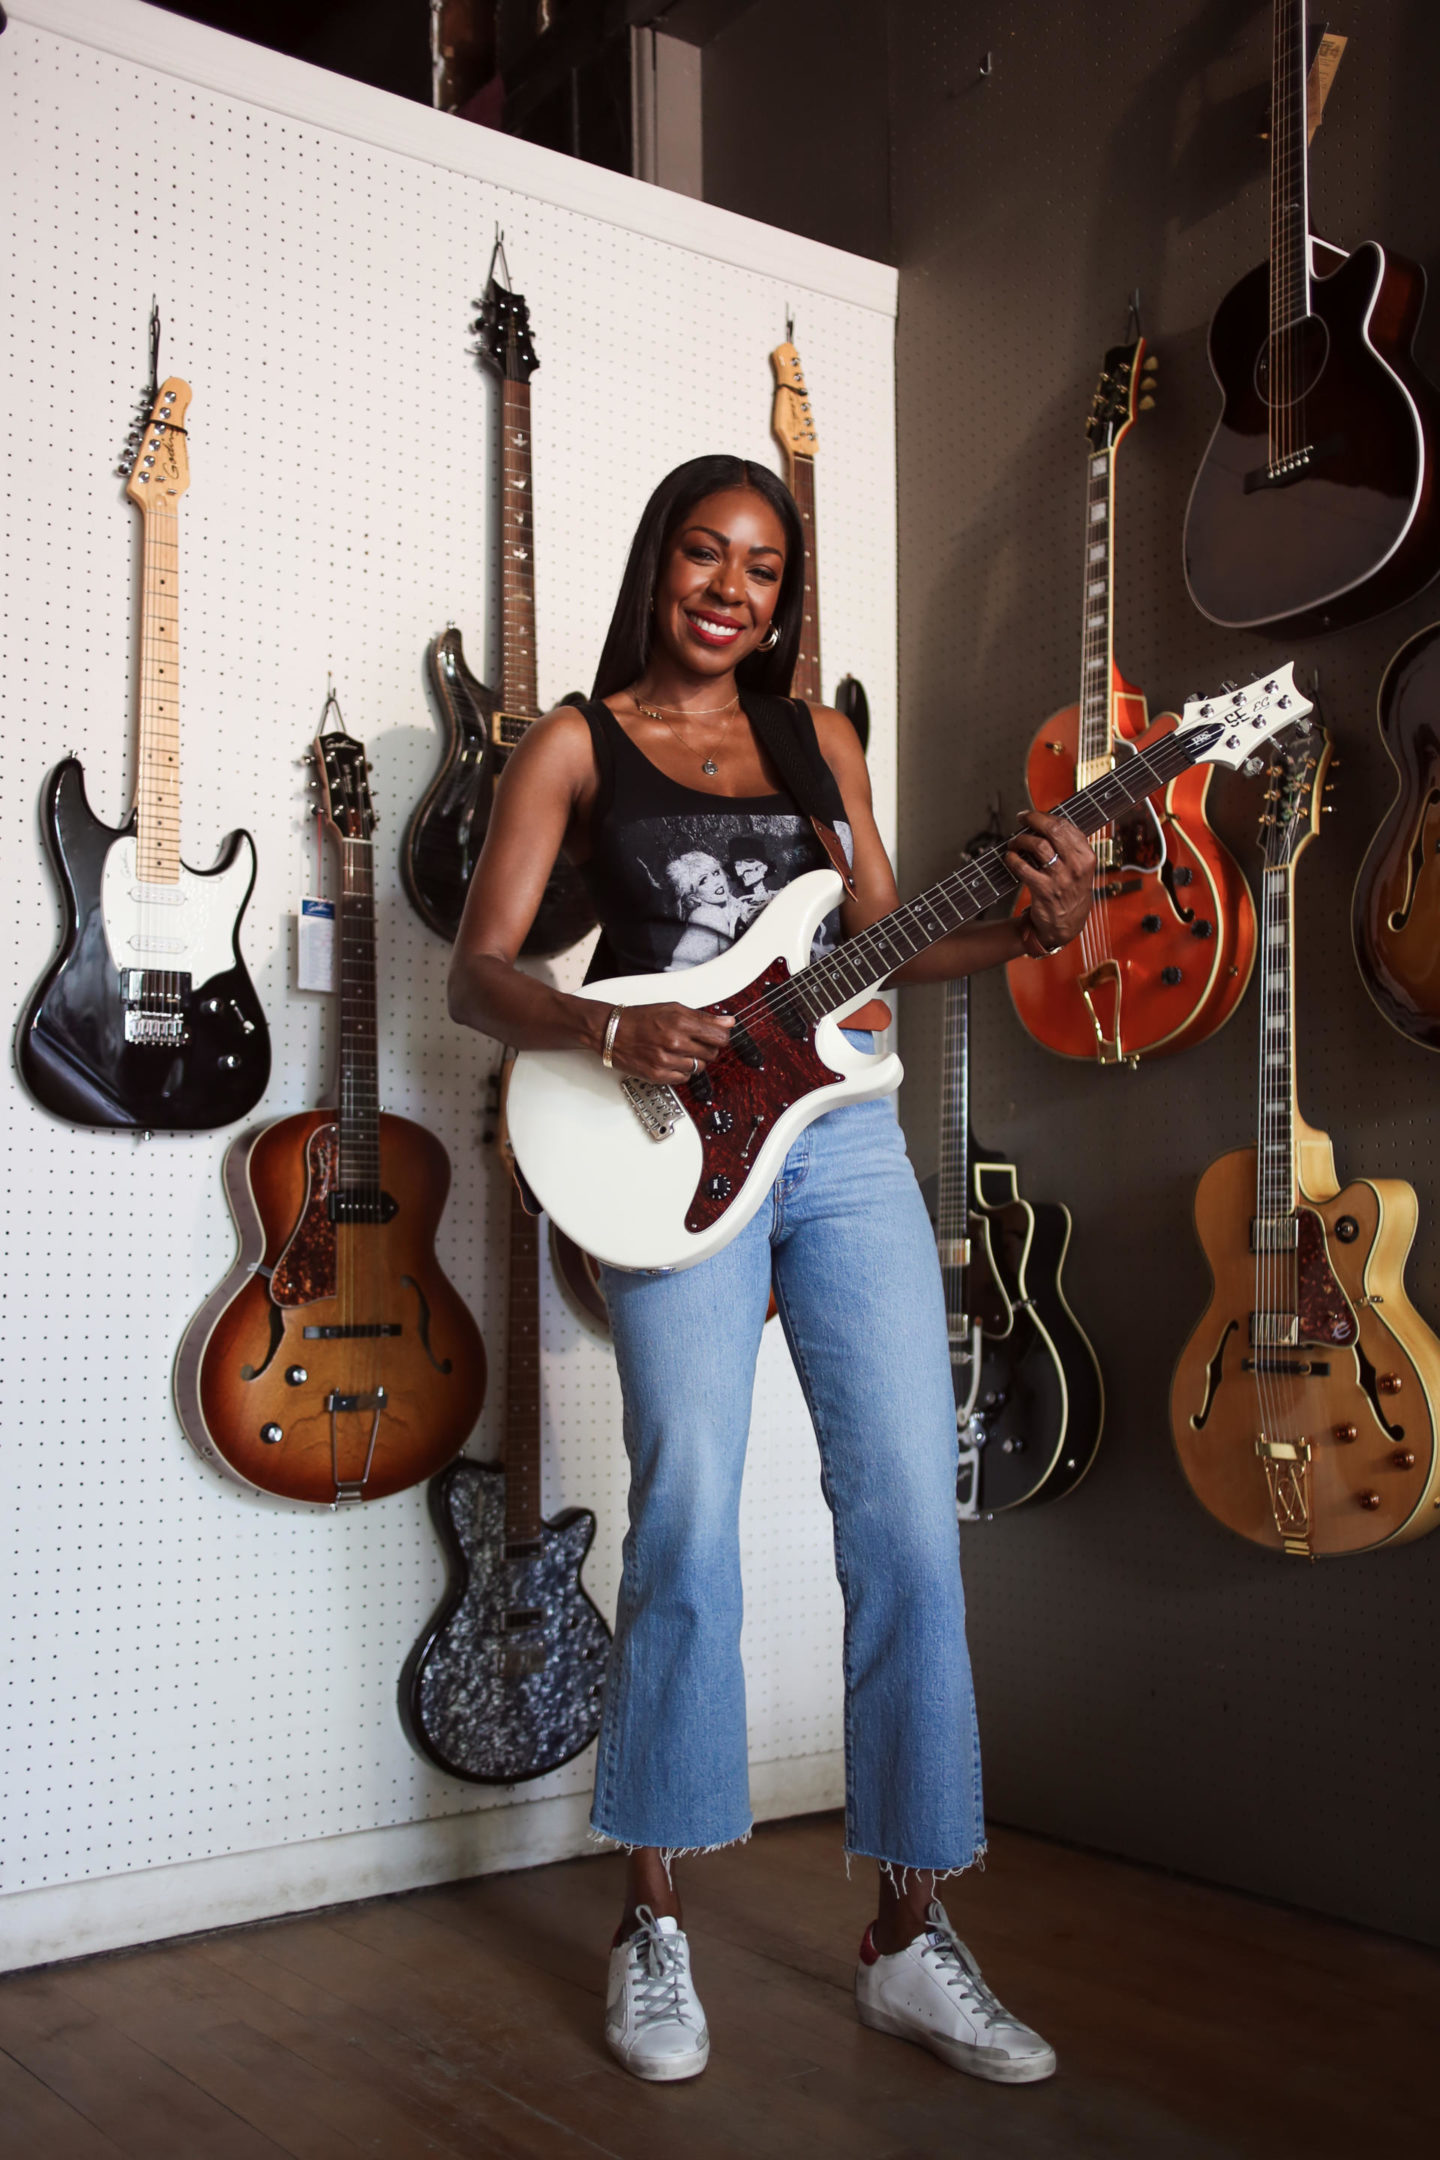 Dominique Baker at Metro Music Bank Street Electric Guitars in background